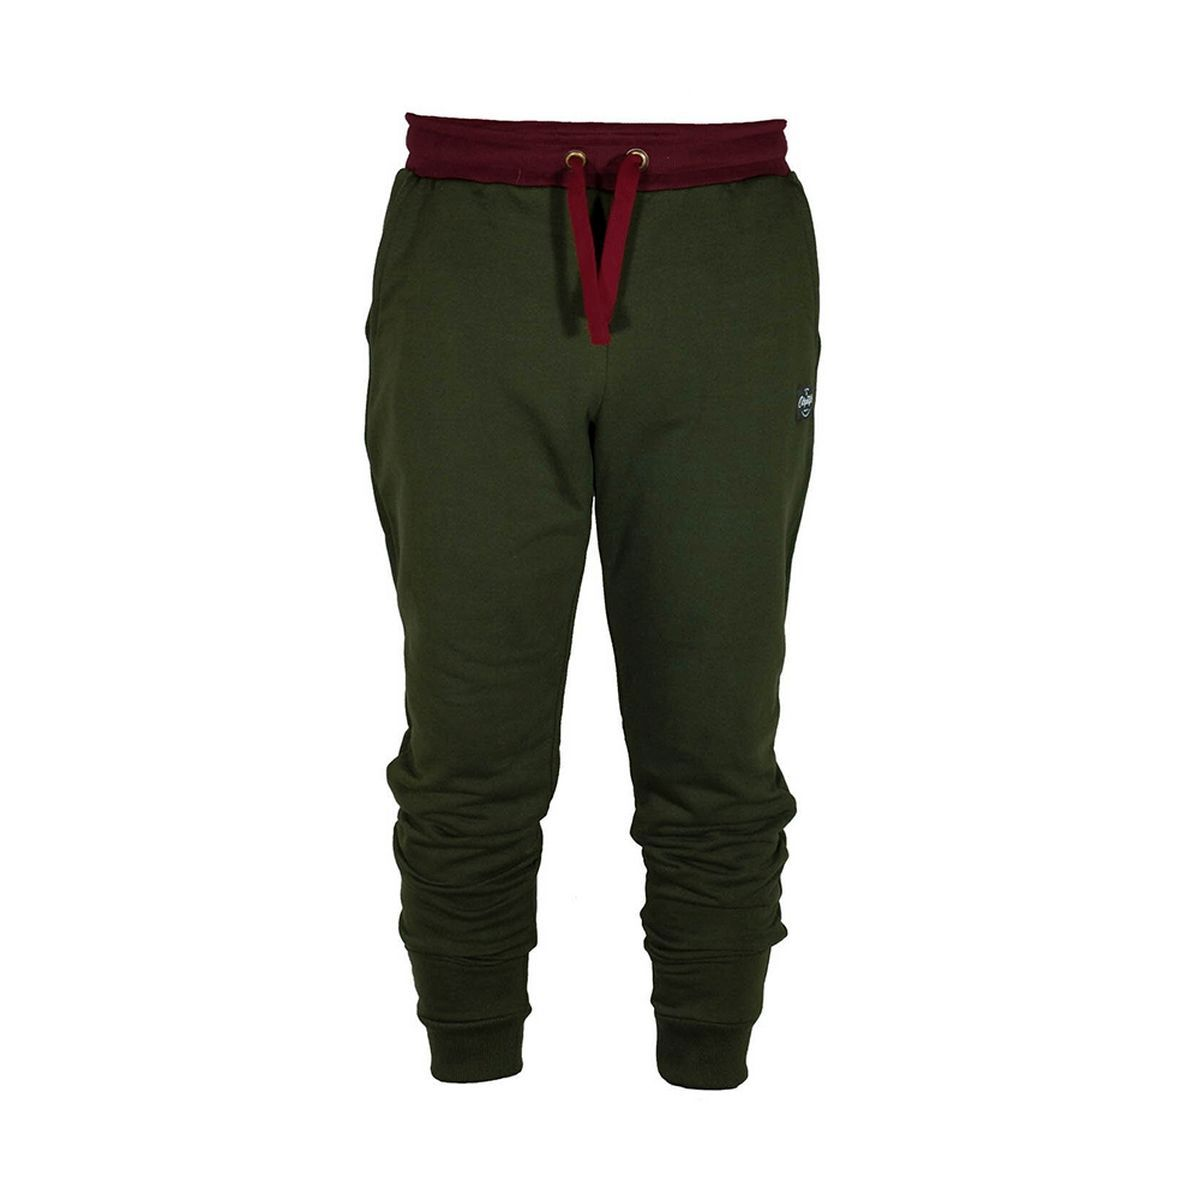 CARPSTYLE GREEN FOREST JOGGERS - L